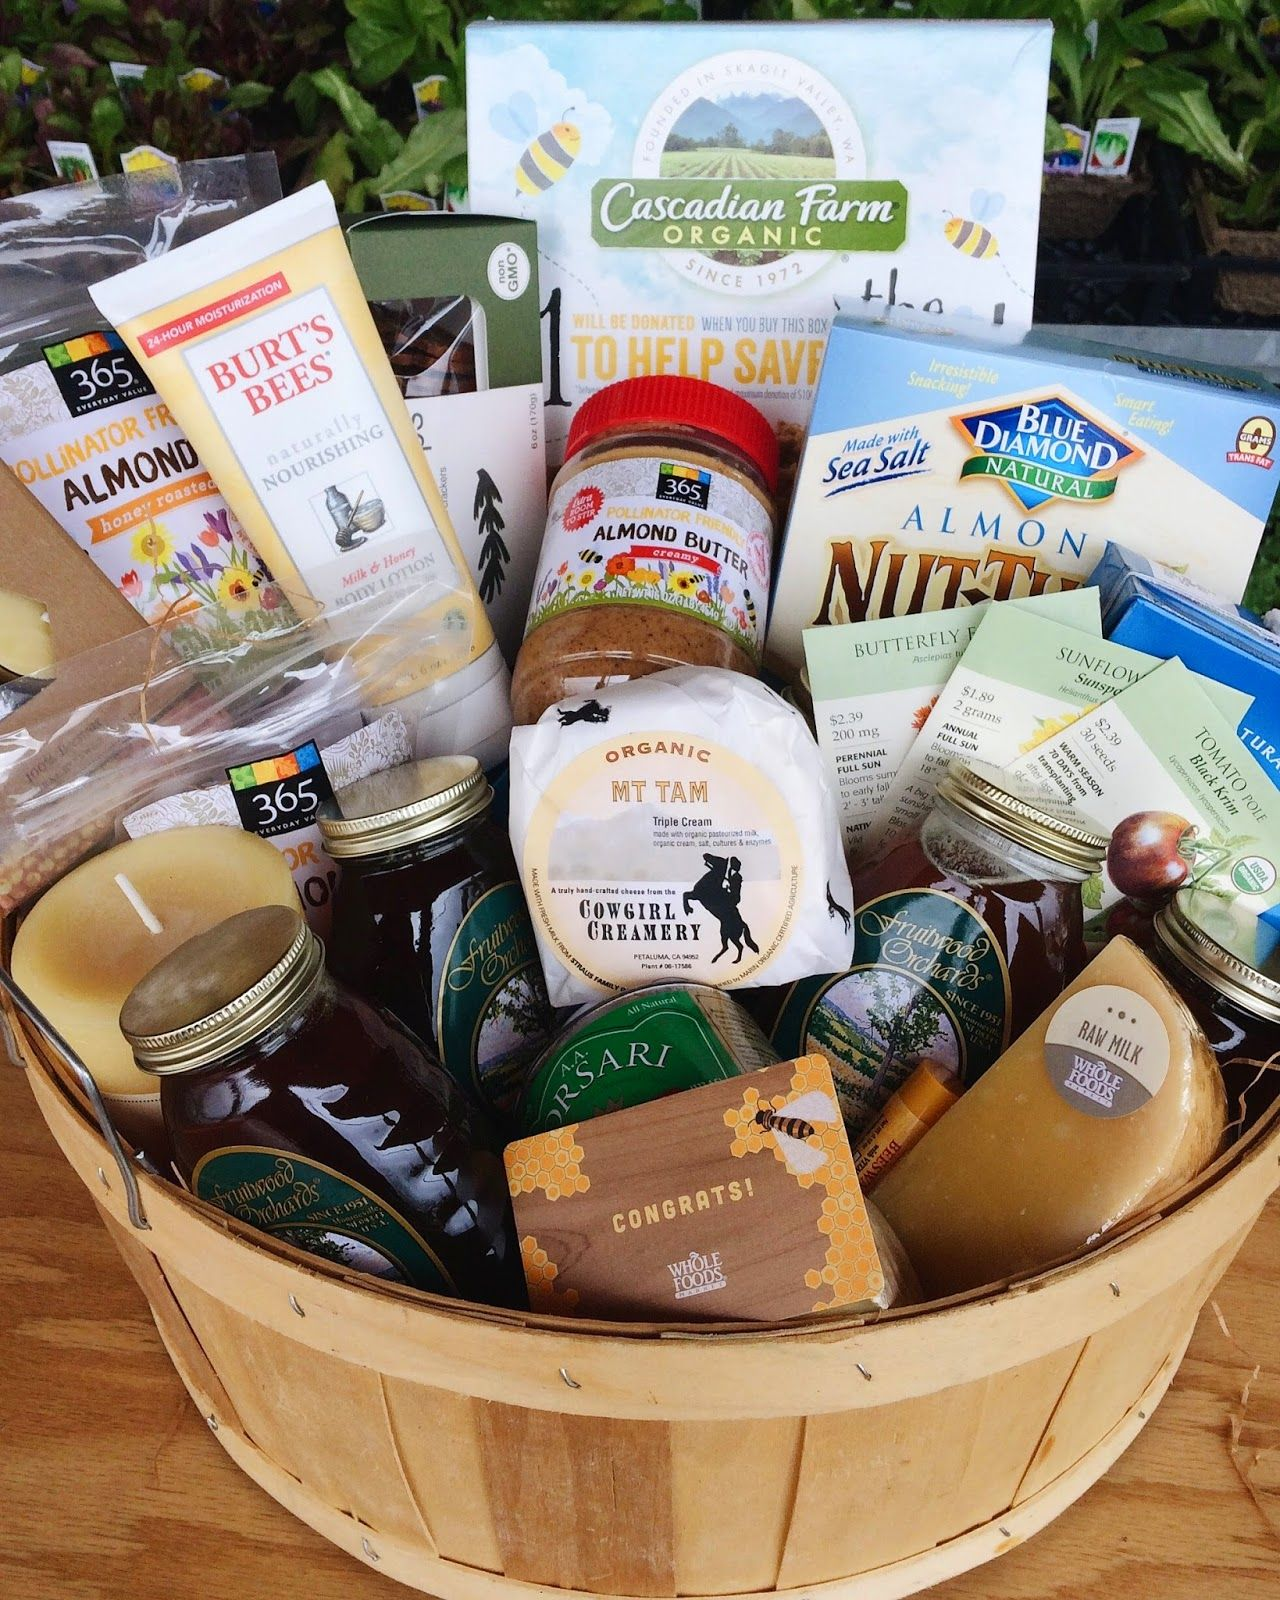 Whole Foods Market Food Gifts Food Inspiration Food Gift Baskets Healthy Whole Food Recipes Gifts For Friends Lifestyle Blog Bee Presents For ... & Pin by Alison Shaffer on Whole Foods Market blogger events ...